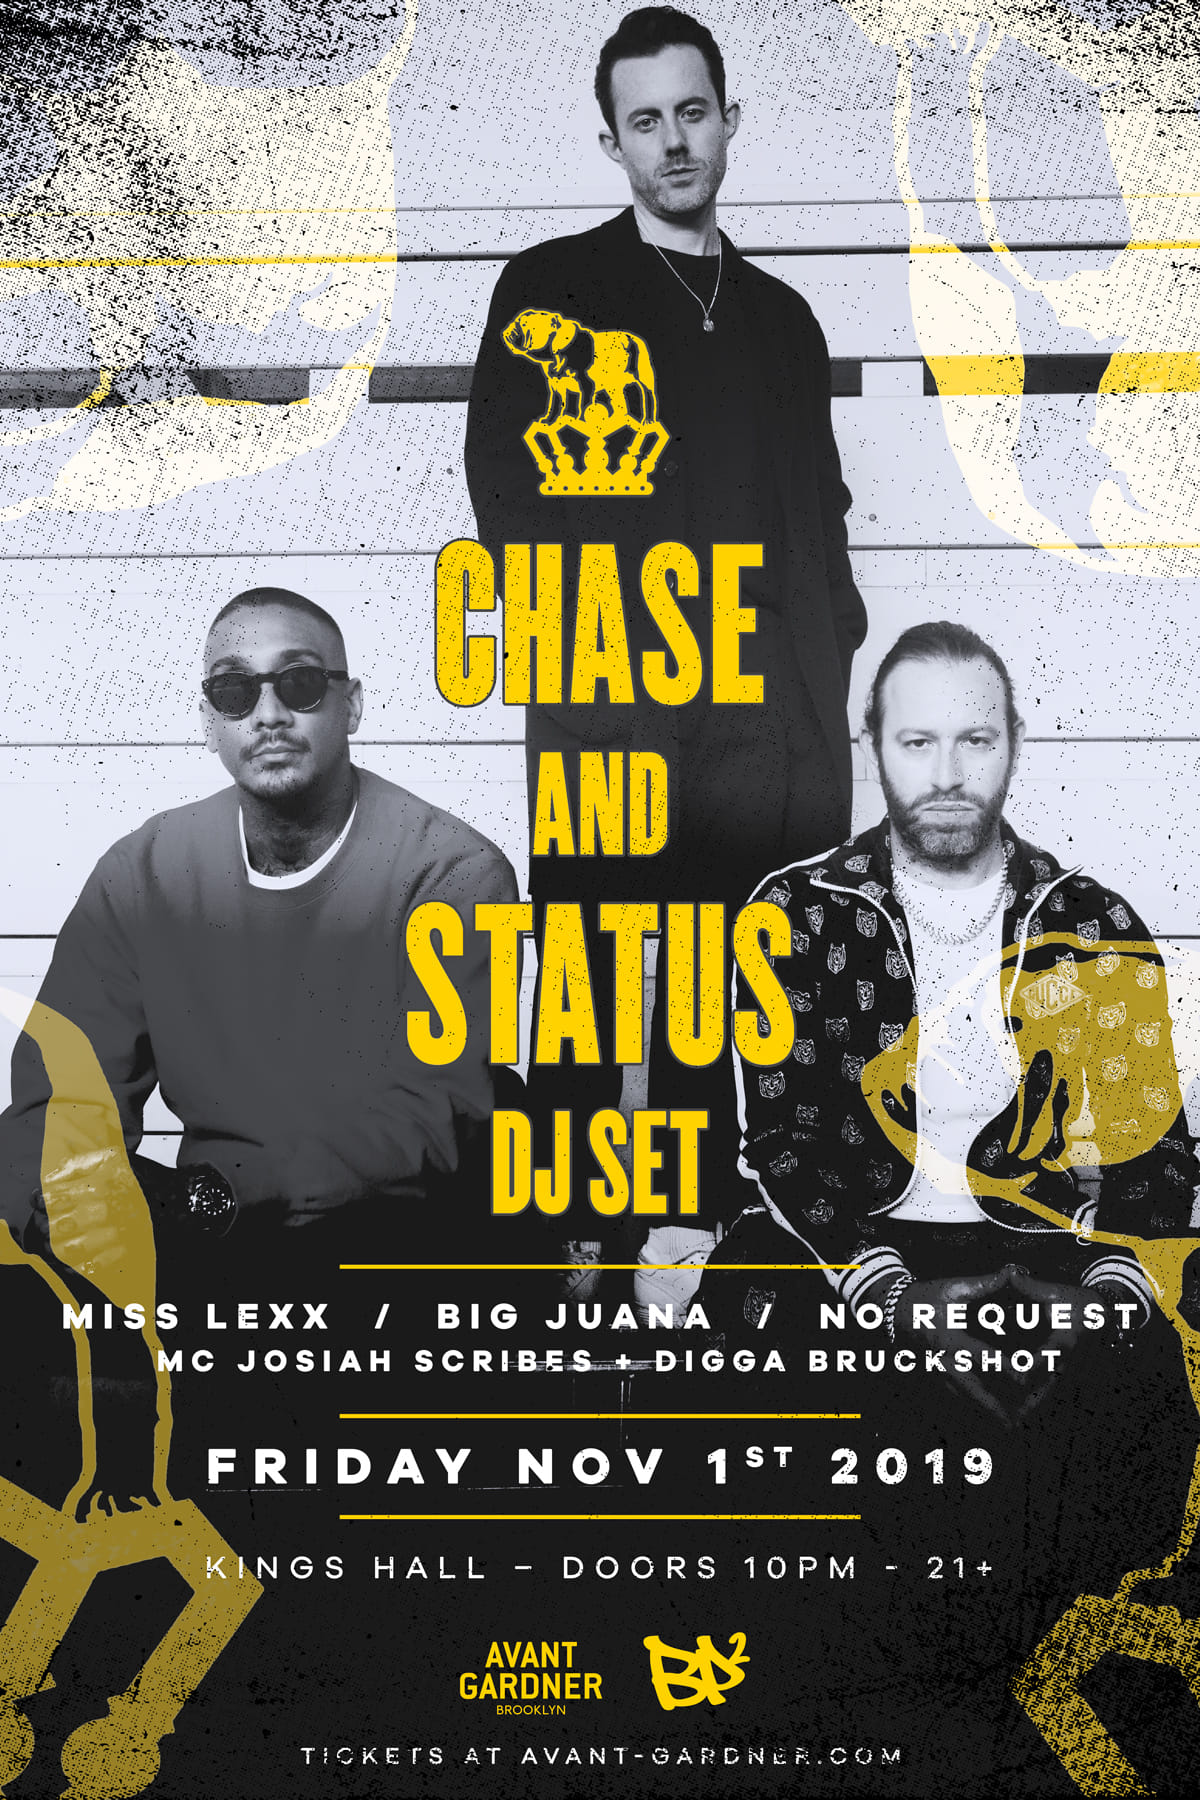 BP² presents Chase and Status at Kings Hall, Brooklyn November 2019.